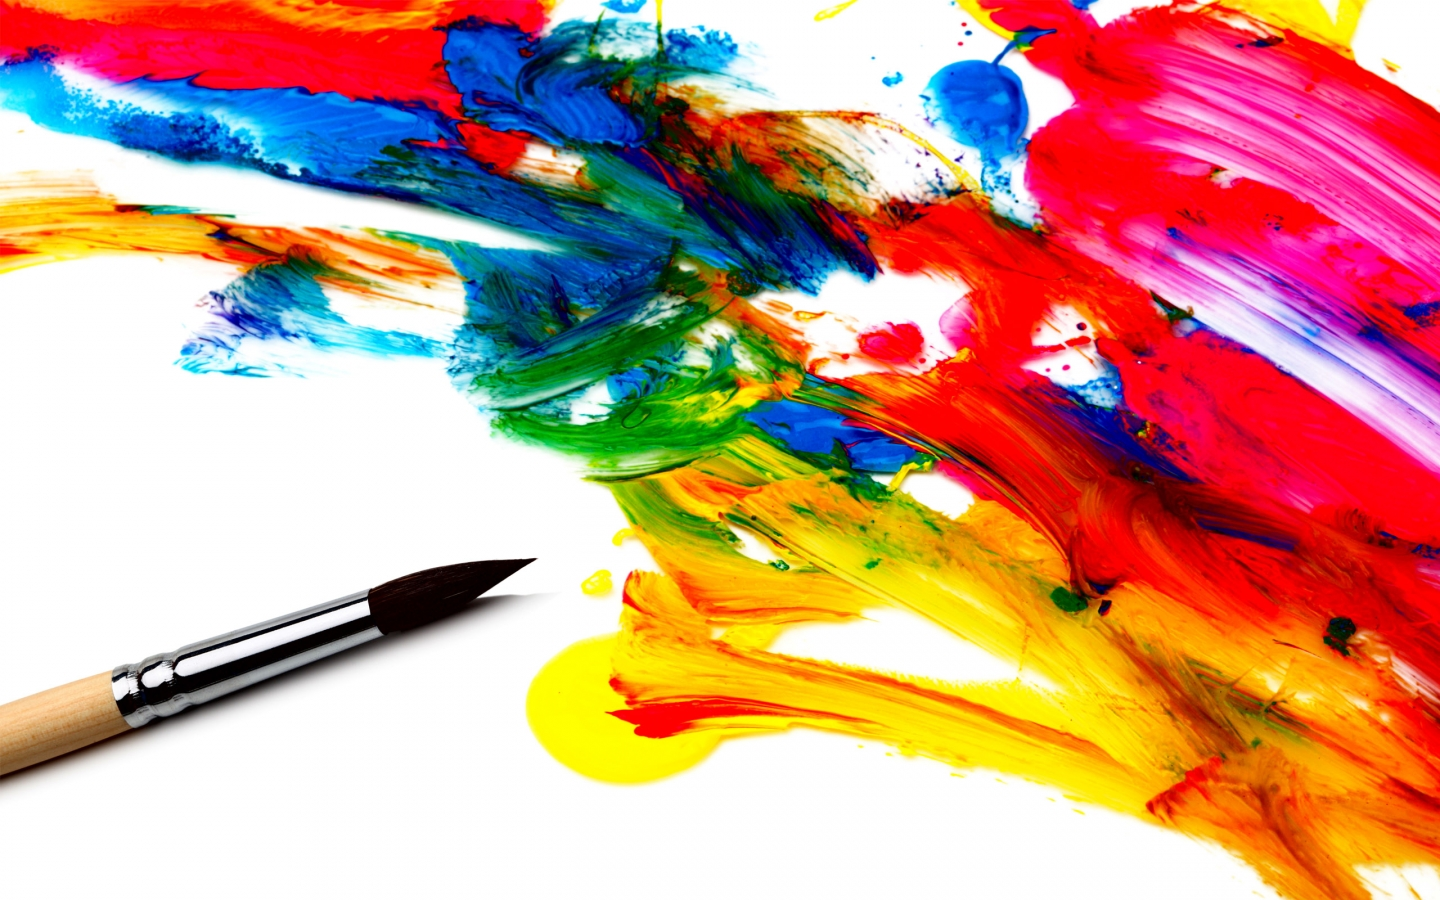 Abstract-Paint-Brush-Wallpaper-PC.jpg